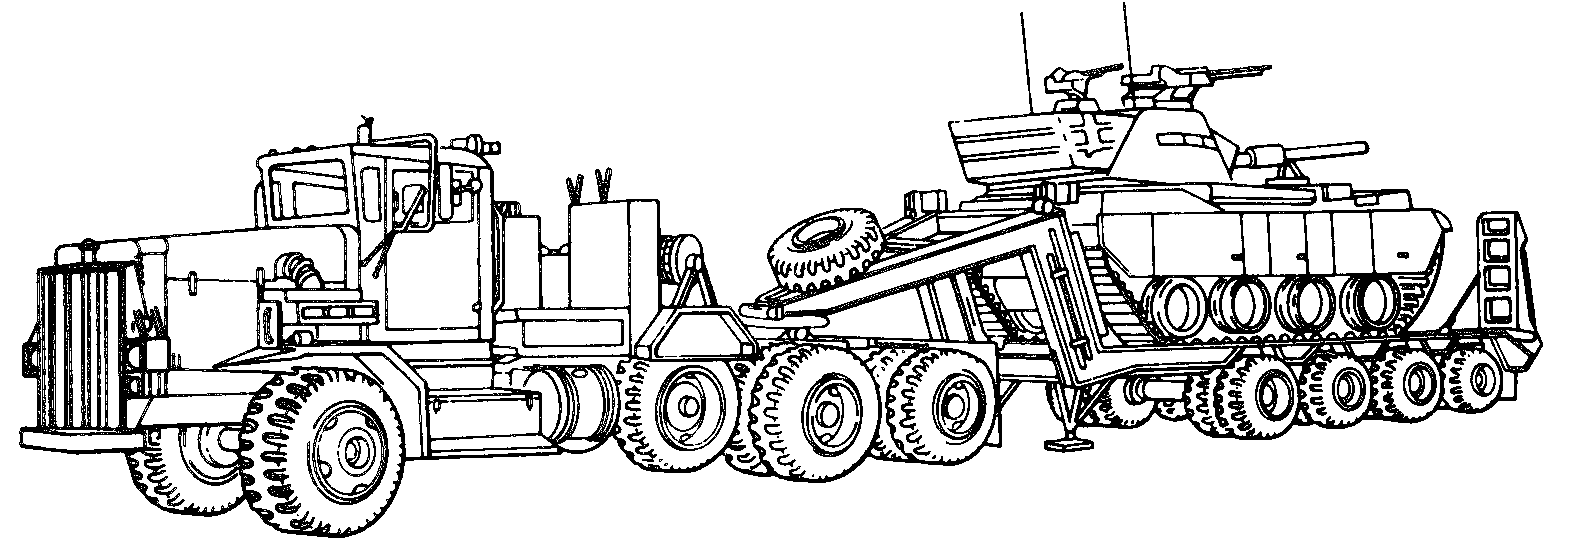 Semi Truck Coloring Pages Printable